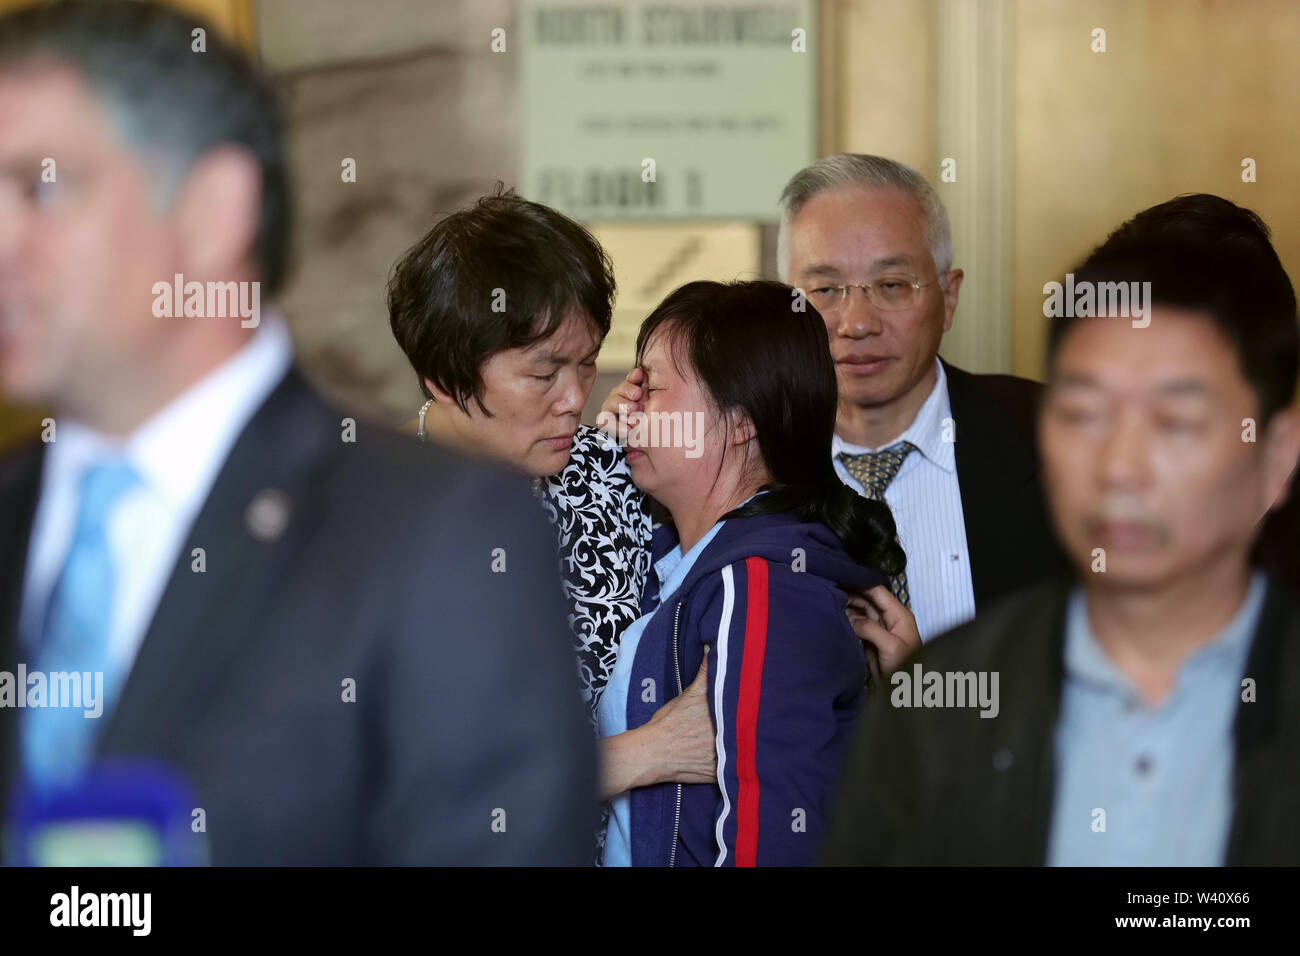 Peoria, USA. 18th July, 2019. Zhang Yingying's mother (C) is seen at a press conference after sentencing in Peoria, Illinois, the United States, July 18, 2019. Brendt Christensen, the kidnapper and killer of Chinese scholar Zhang Yingying in 2017, was sentenced on Thursday to life imprisonment without possibility of release, Judge James Shadid announced the verdict in a federal court of Peoria in the U.S. state of Illinois, after the jury failed to reach a unanimous decision on whether he should be sentenced to death or life in prison. Credit: Wang Ping/Xinhua/Alamy Live News - Stock Image